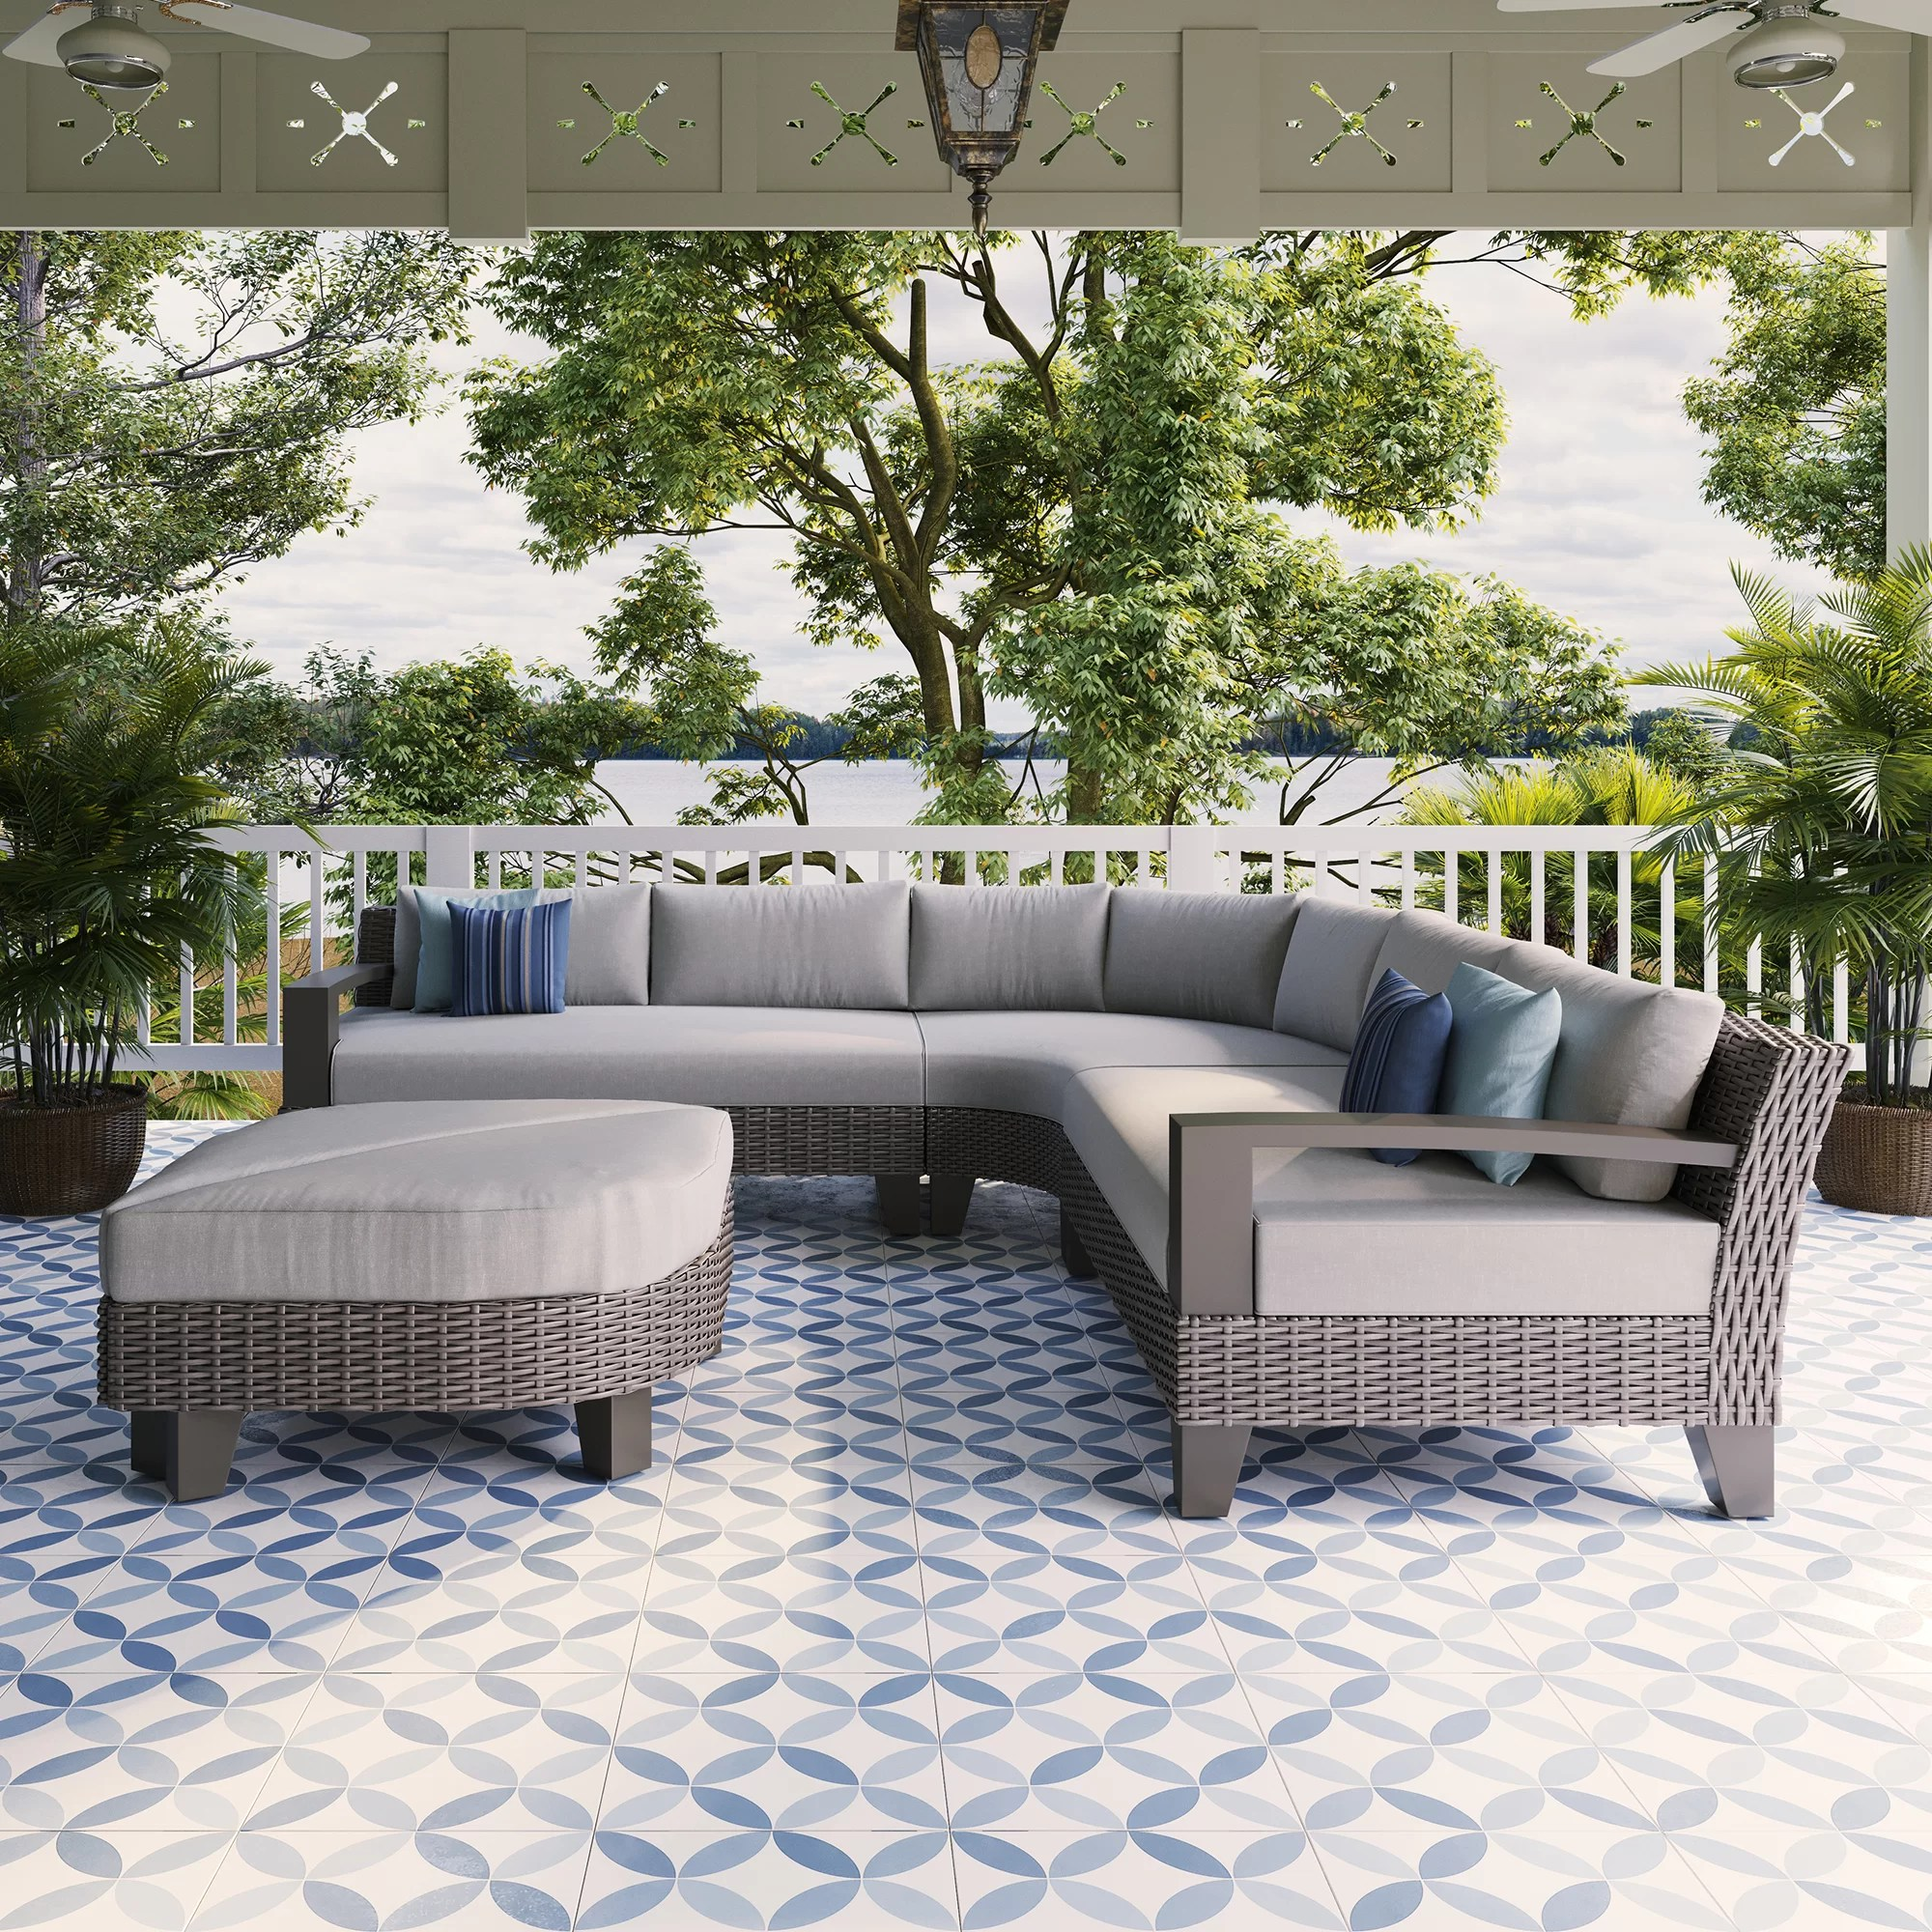 oakland patio 5 piece rattan sectional seating group with cushions